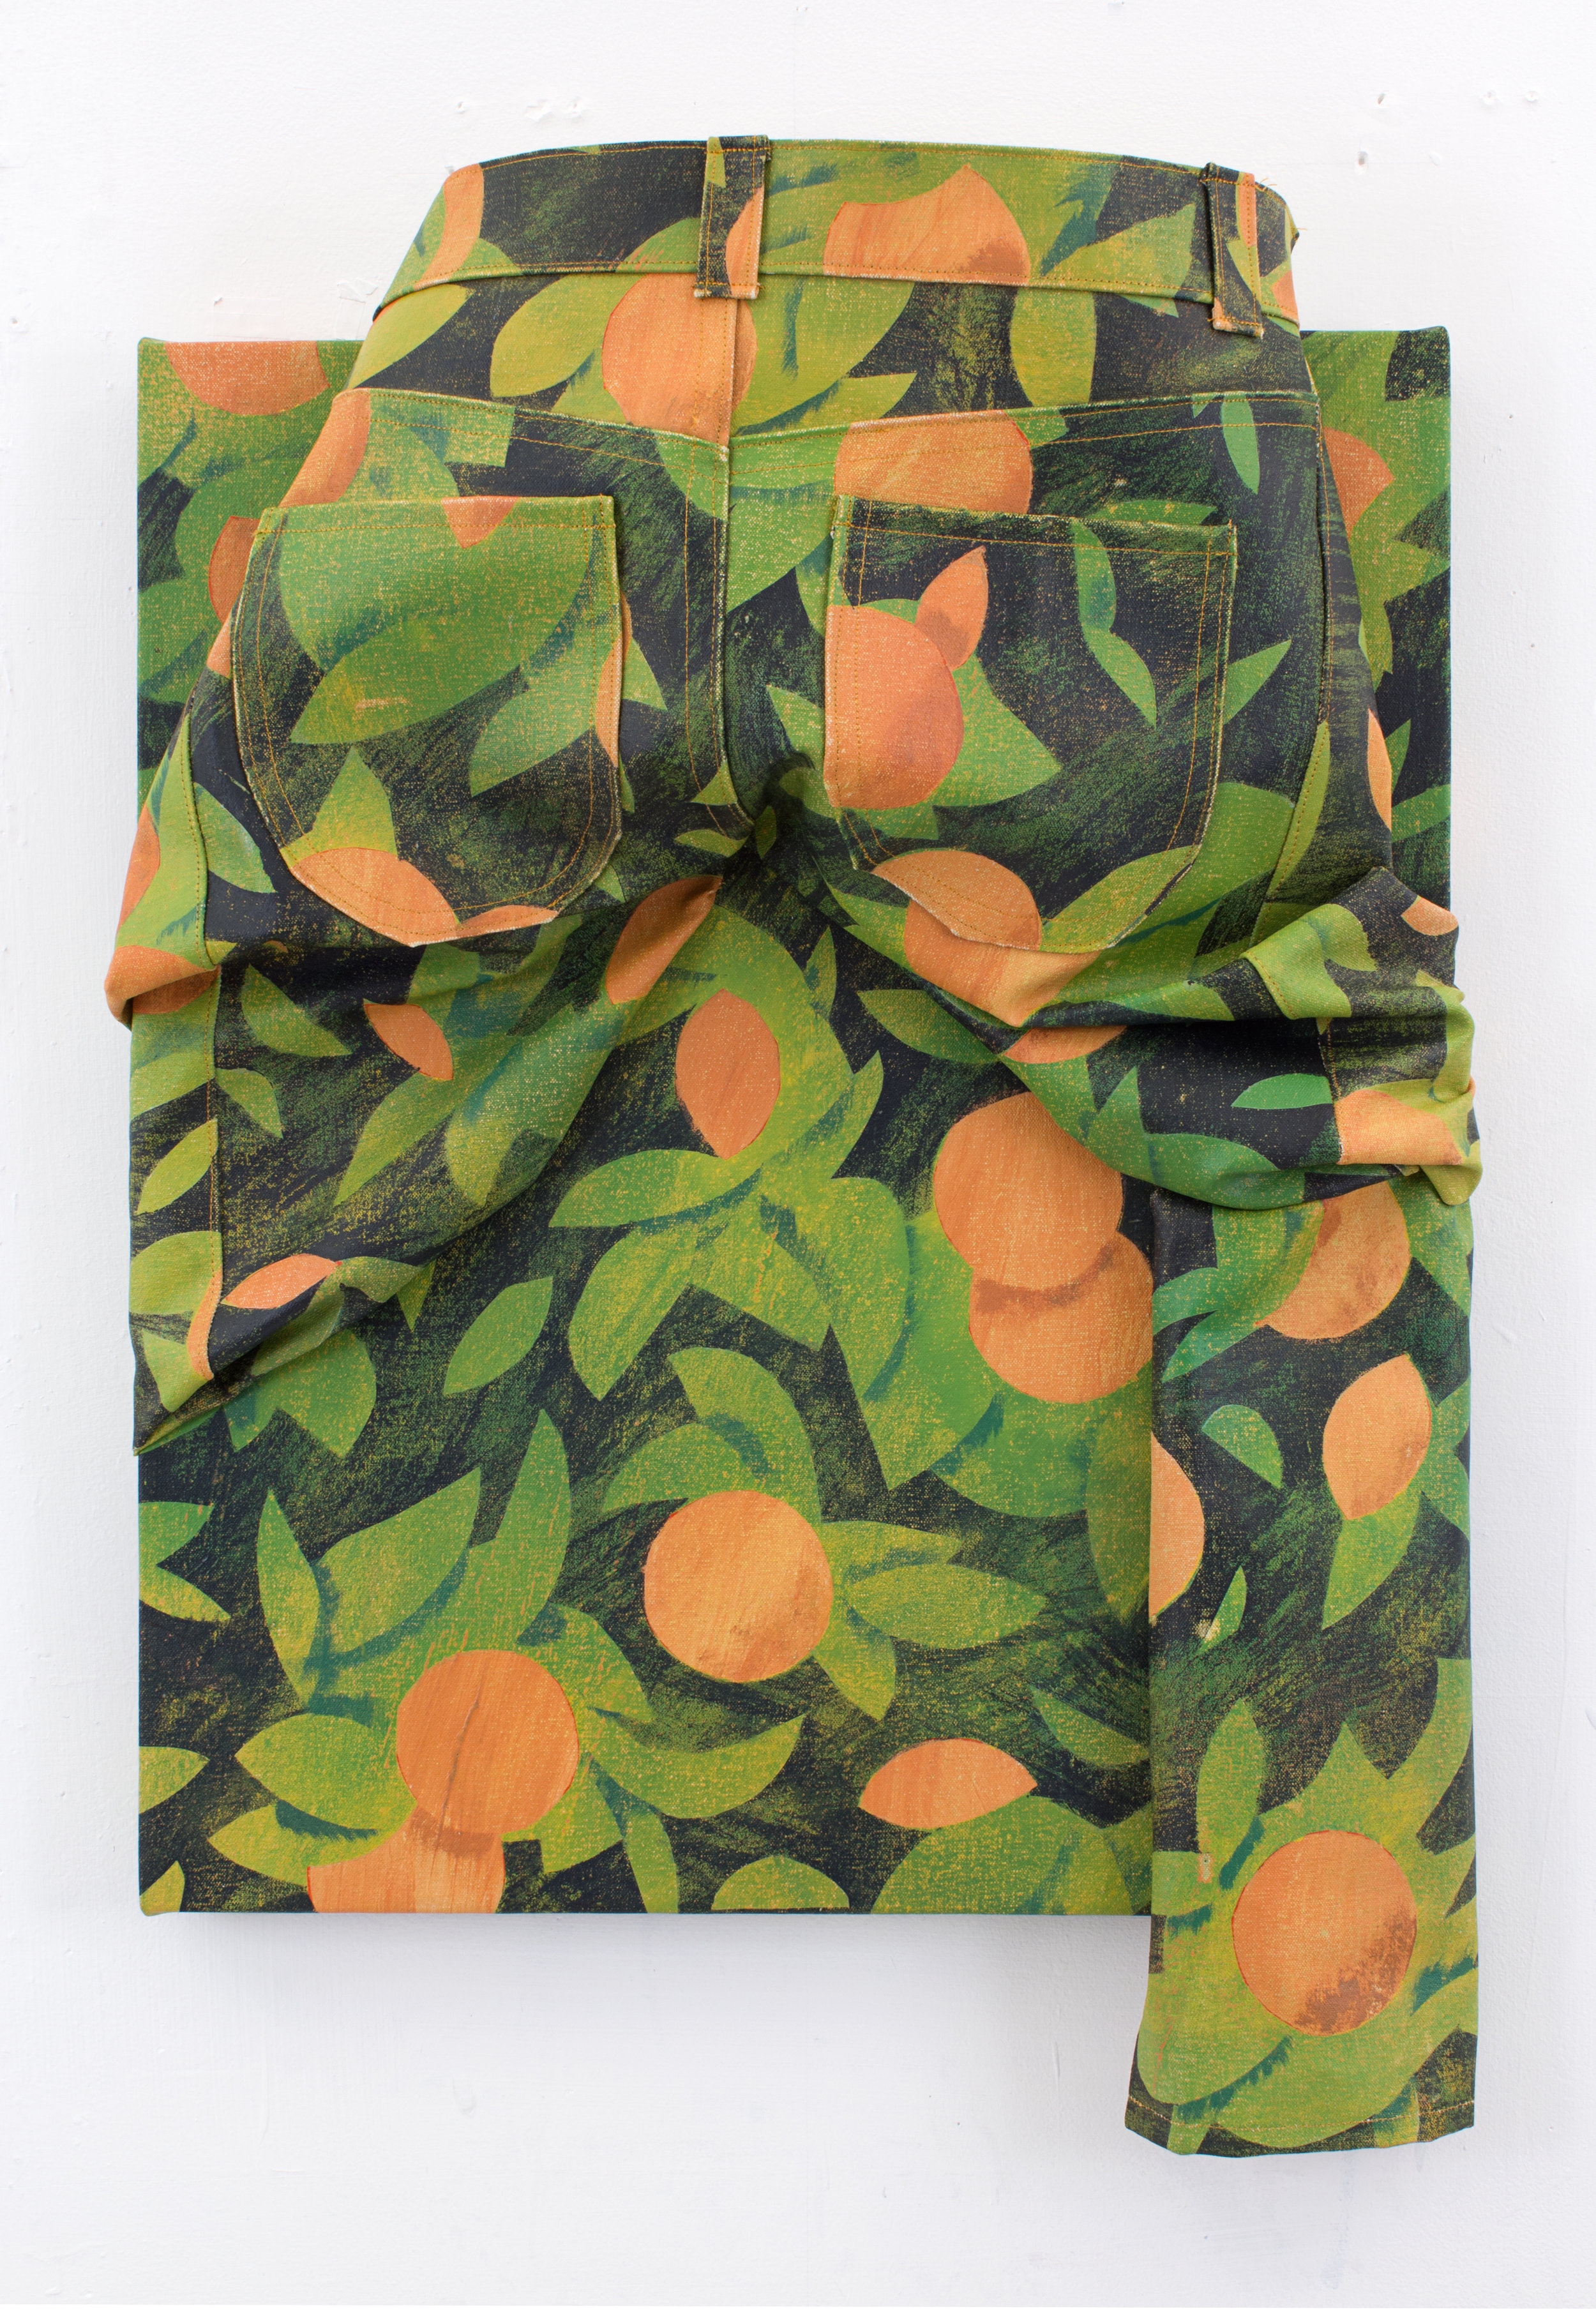 Back to Oranges acrylic on canvas 29.5 x 20 x 5 inches 2016